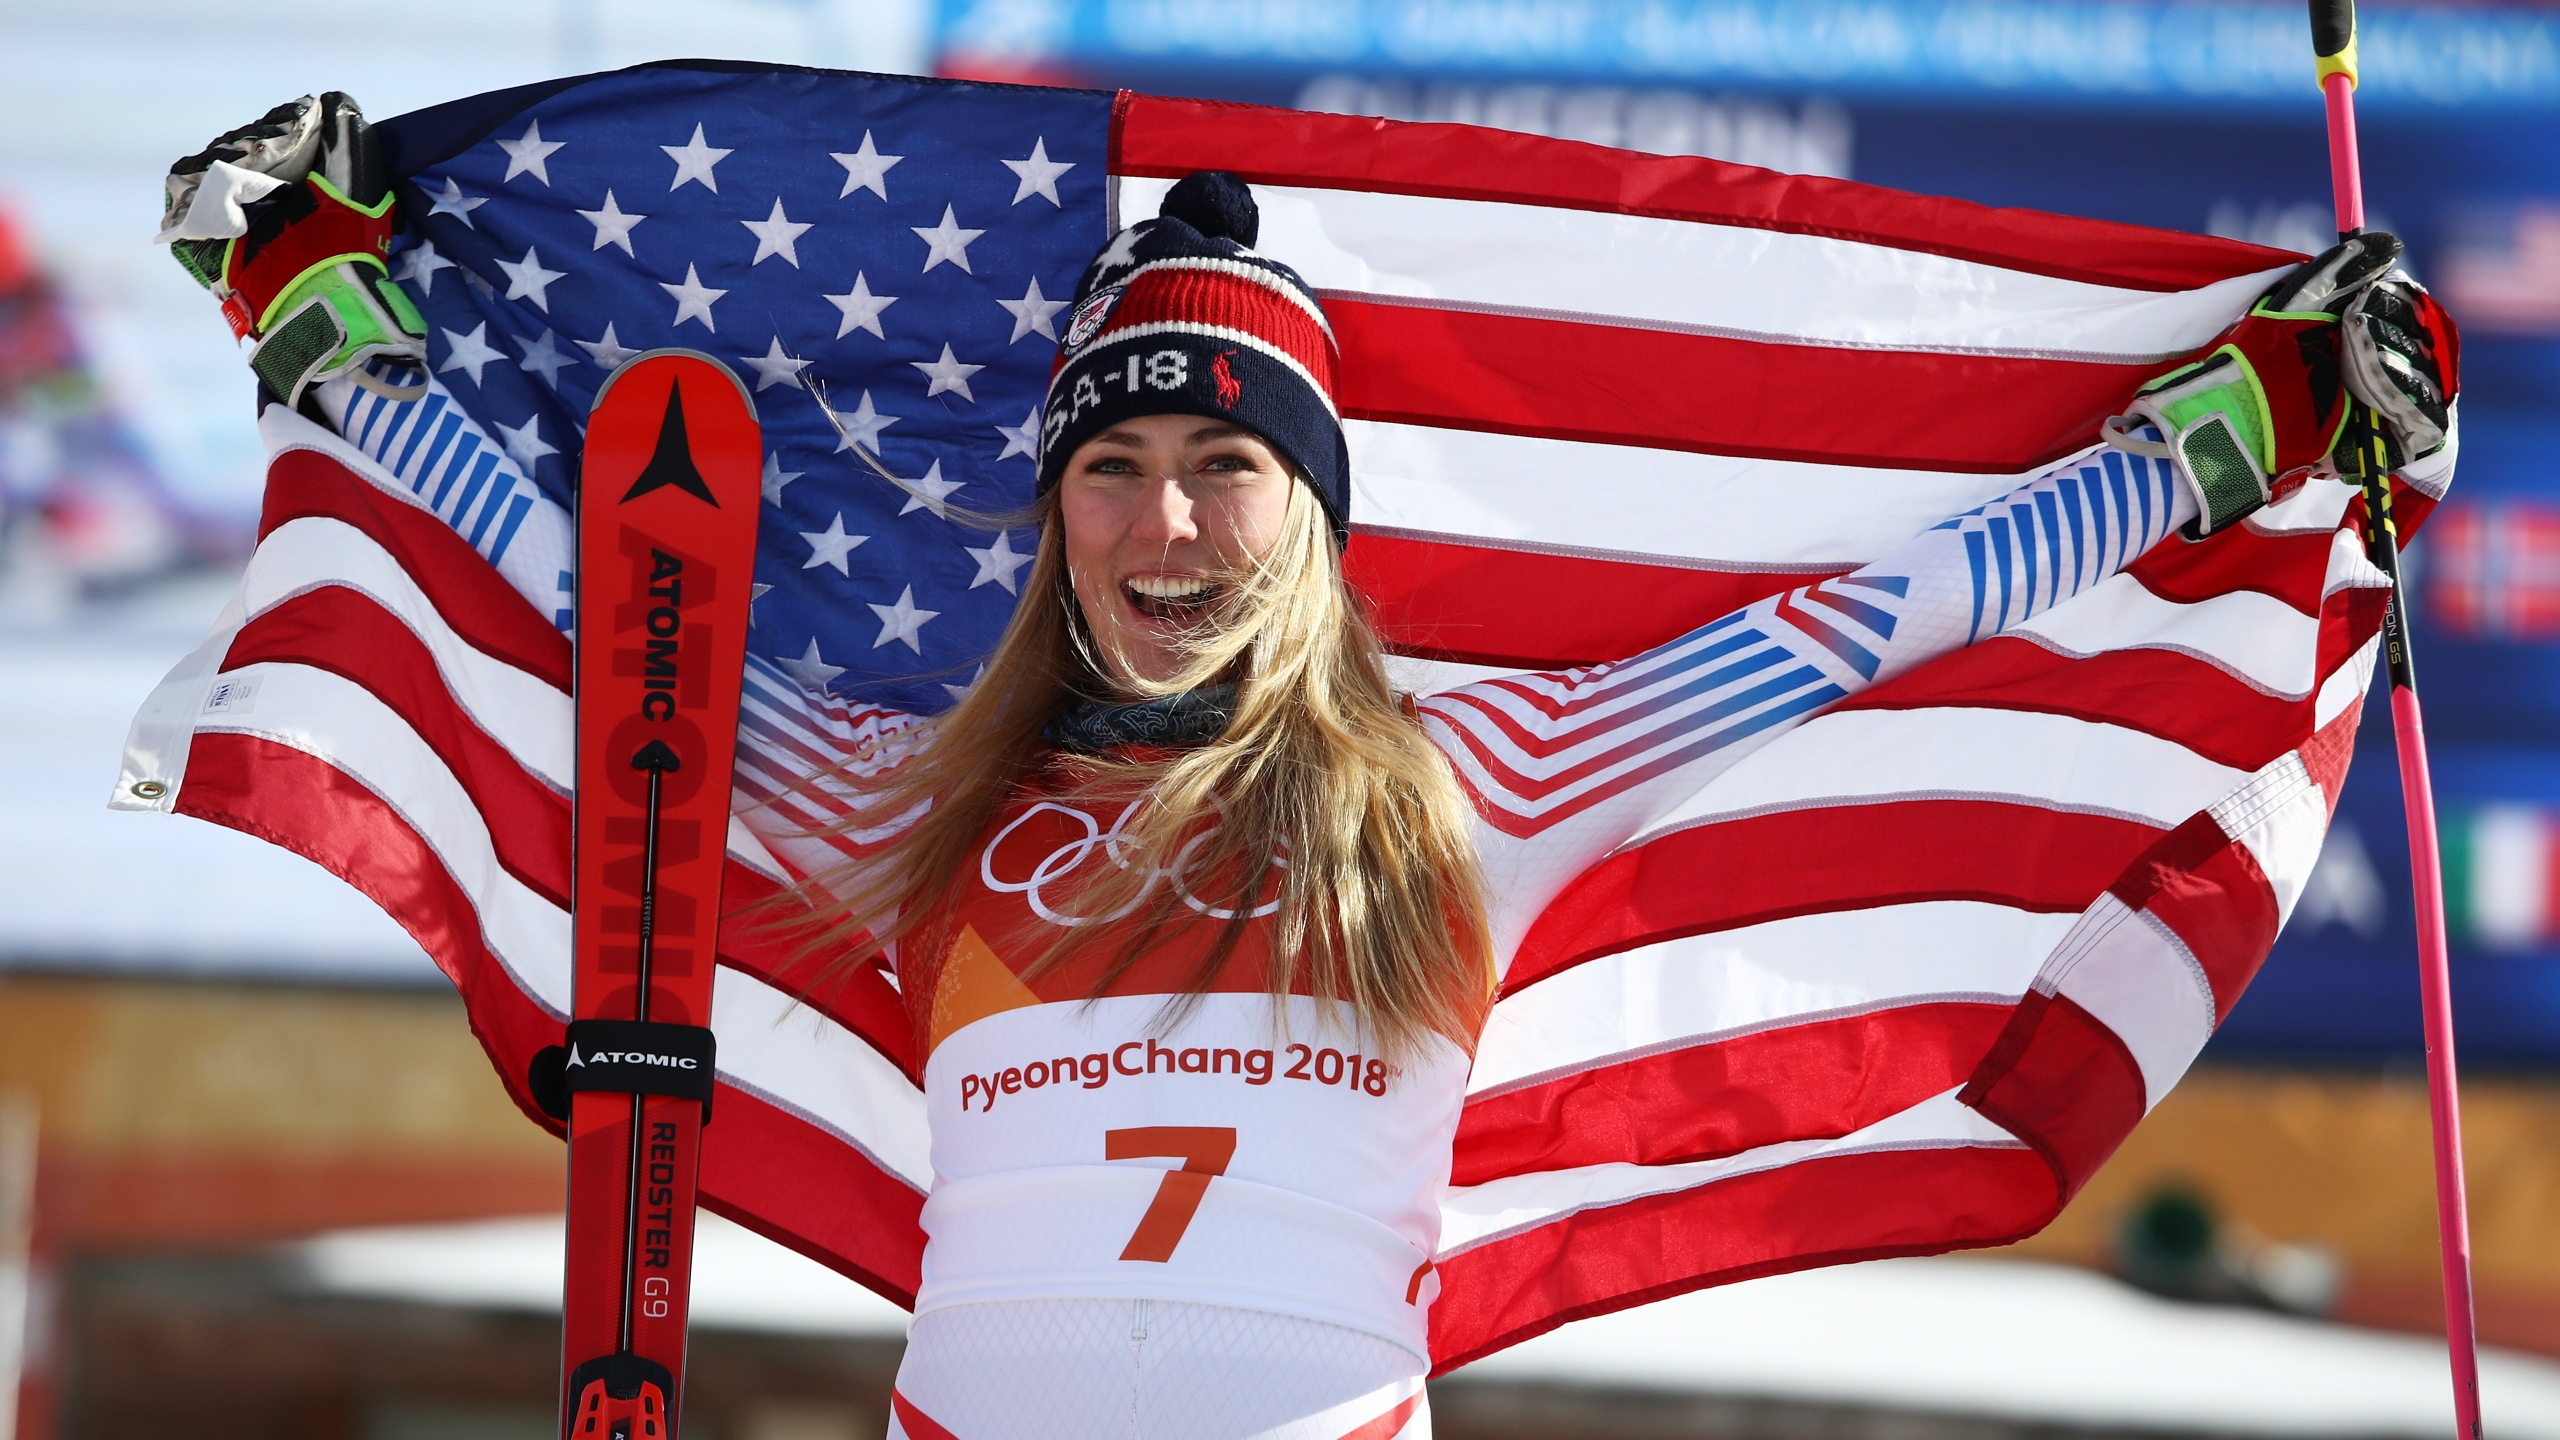 Mikaela Shiffrin of the United States poses on the podium at the Pyeongchang 2018 Winter Olympic Games at Yongpyong Alpine Centre on Feb. 15, 2018, in Pyeongchang-gun, South Korea. (Ezra Shaw/Getty Images)